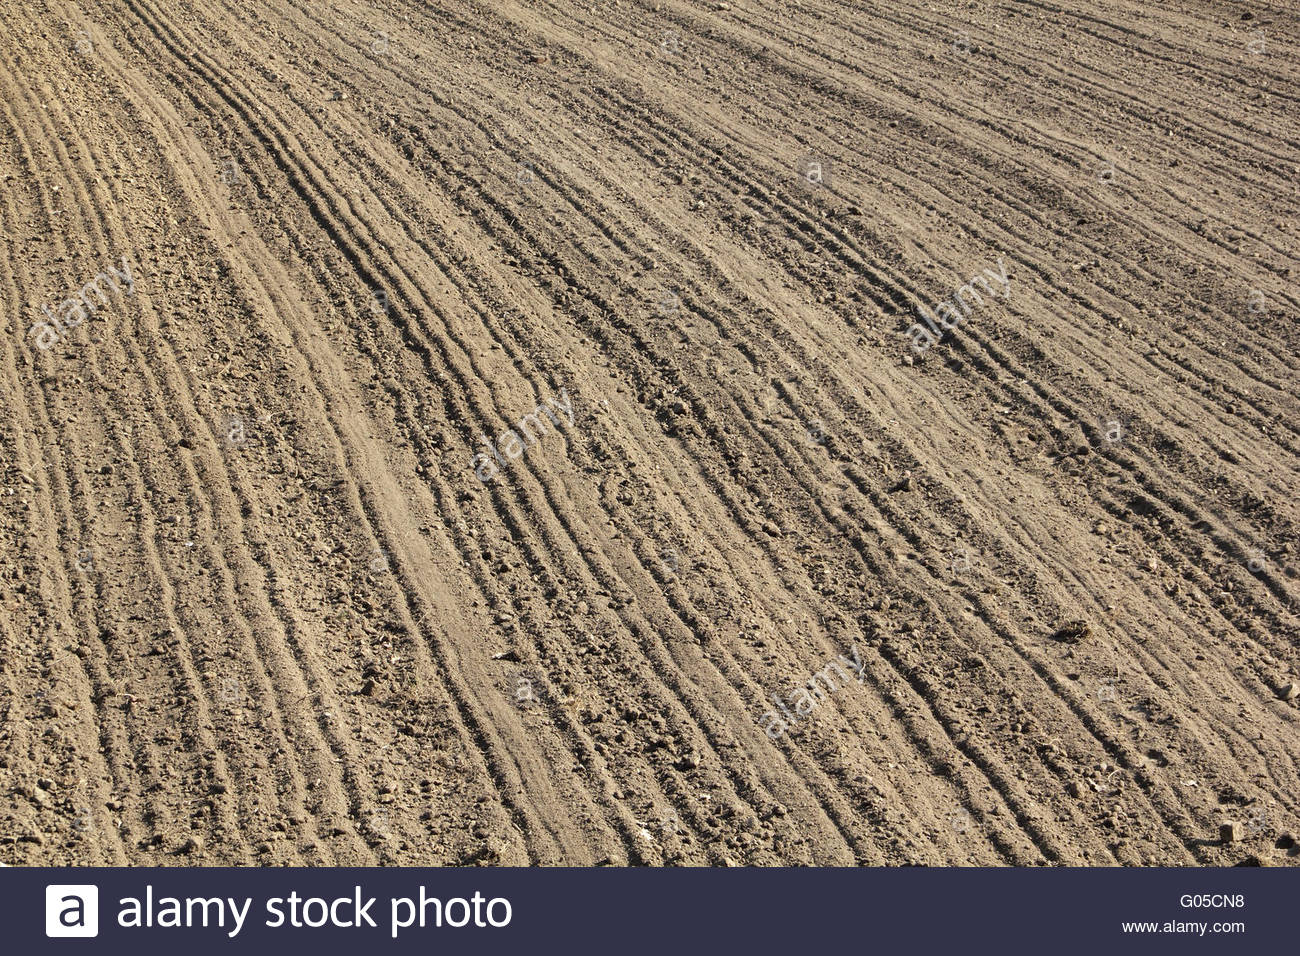 Furrows in early spring - Stock Image